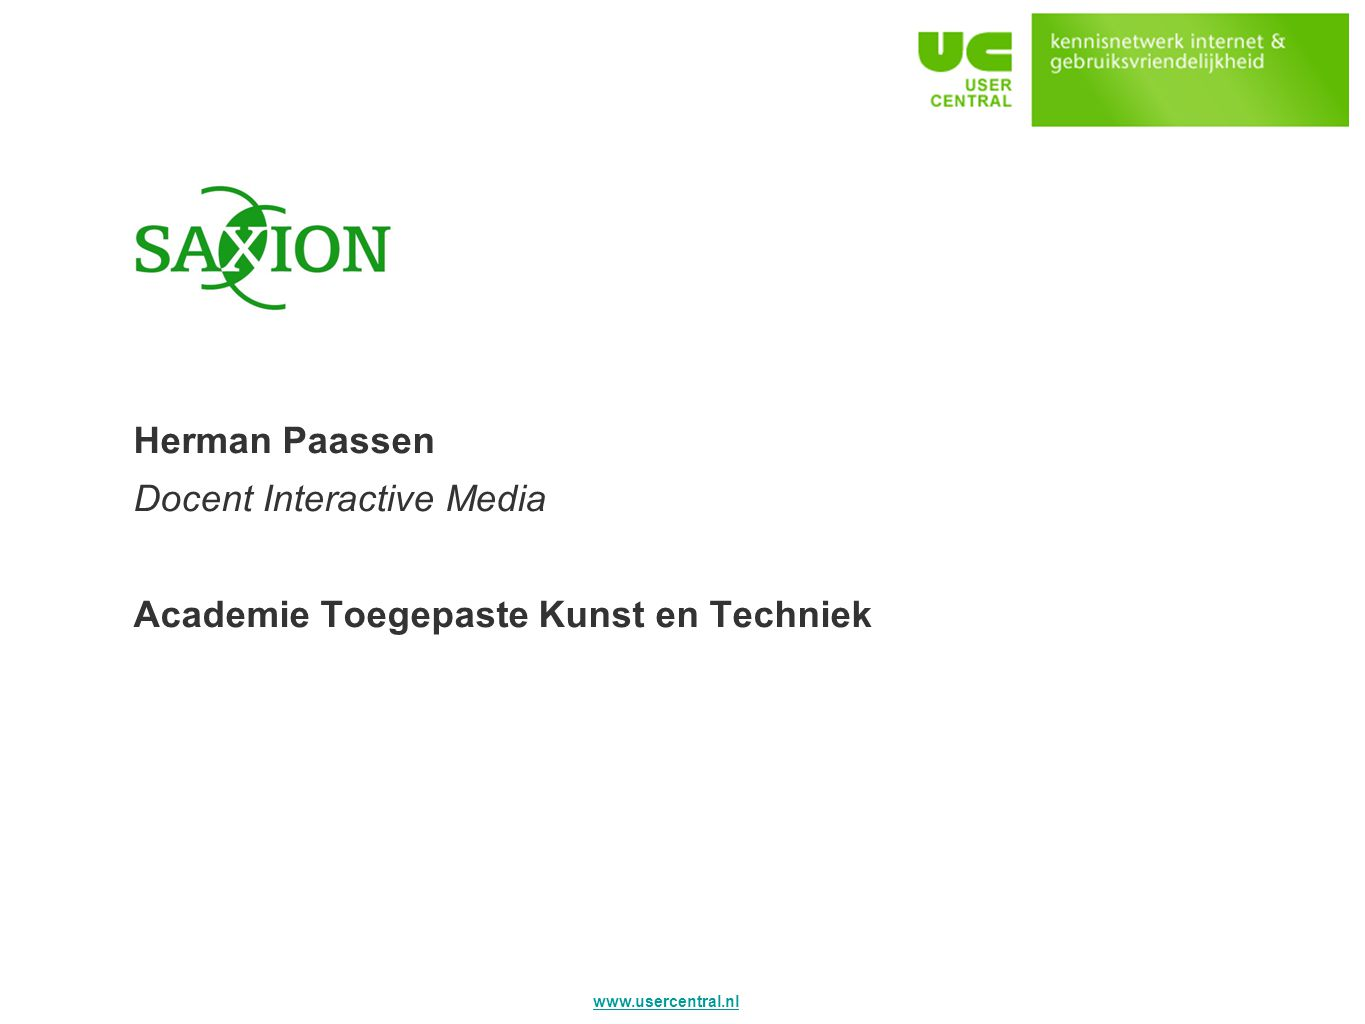 Saxion Herman Paassen Docent Interactive Media